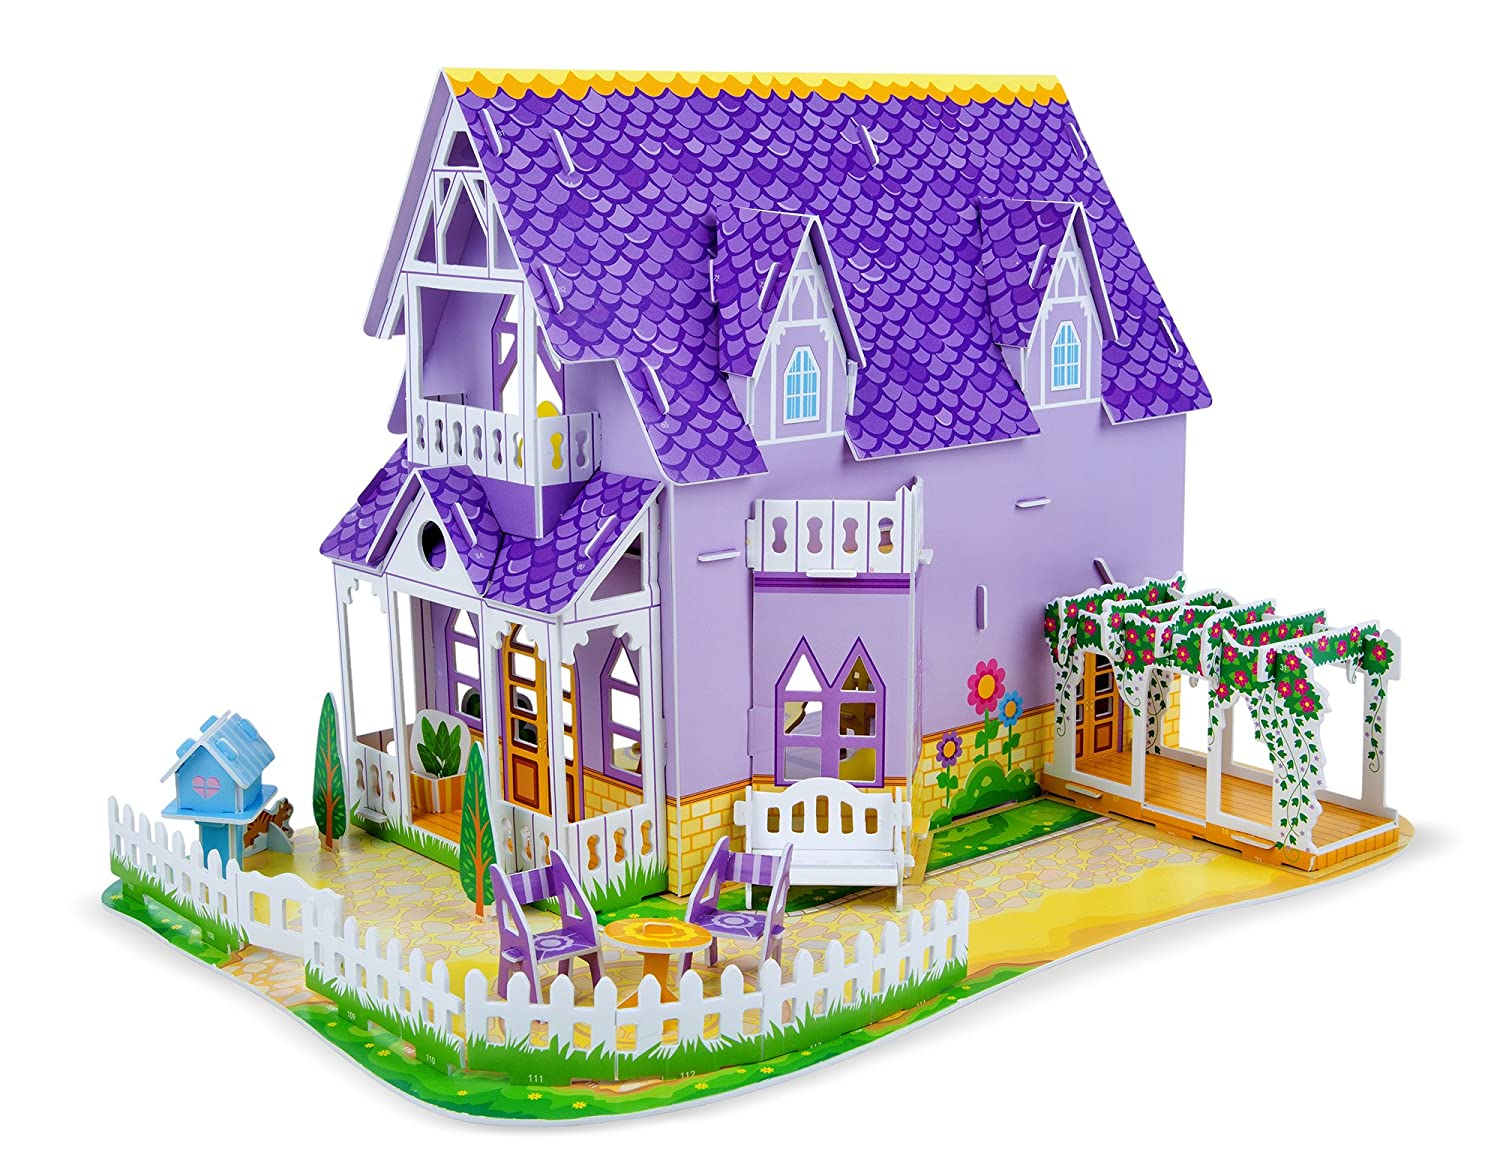 Melissa & Doug Pretty Purple Dollhouse 3-D Puzzle (16 x 10.75 x 10.75 inches, 100+ pcs) Melissa and Doug 9461